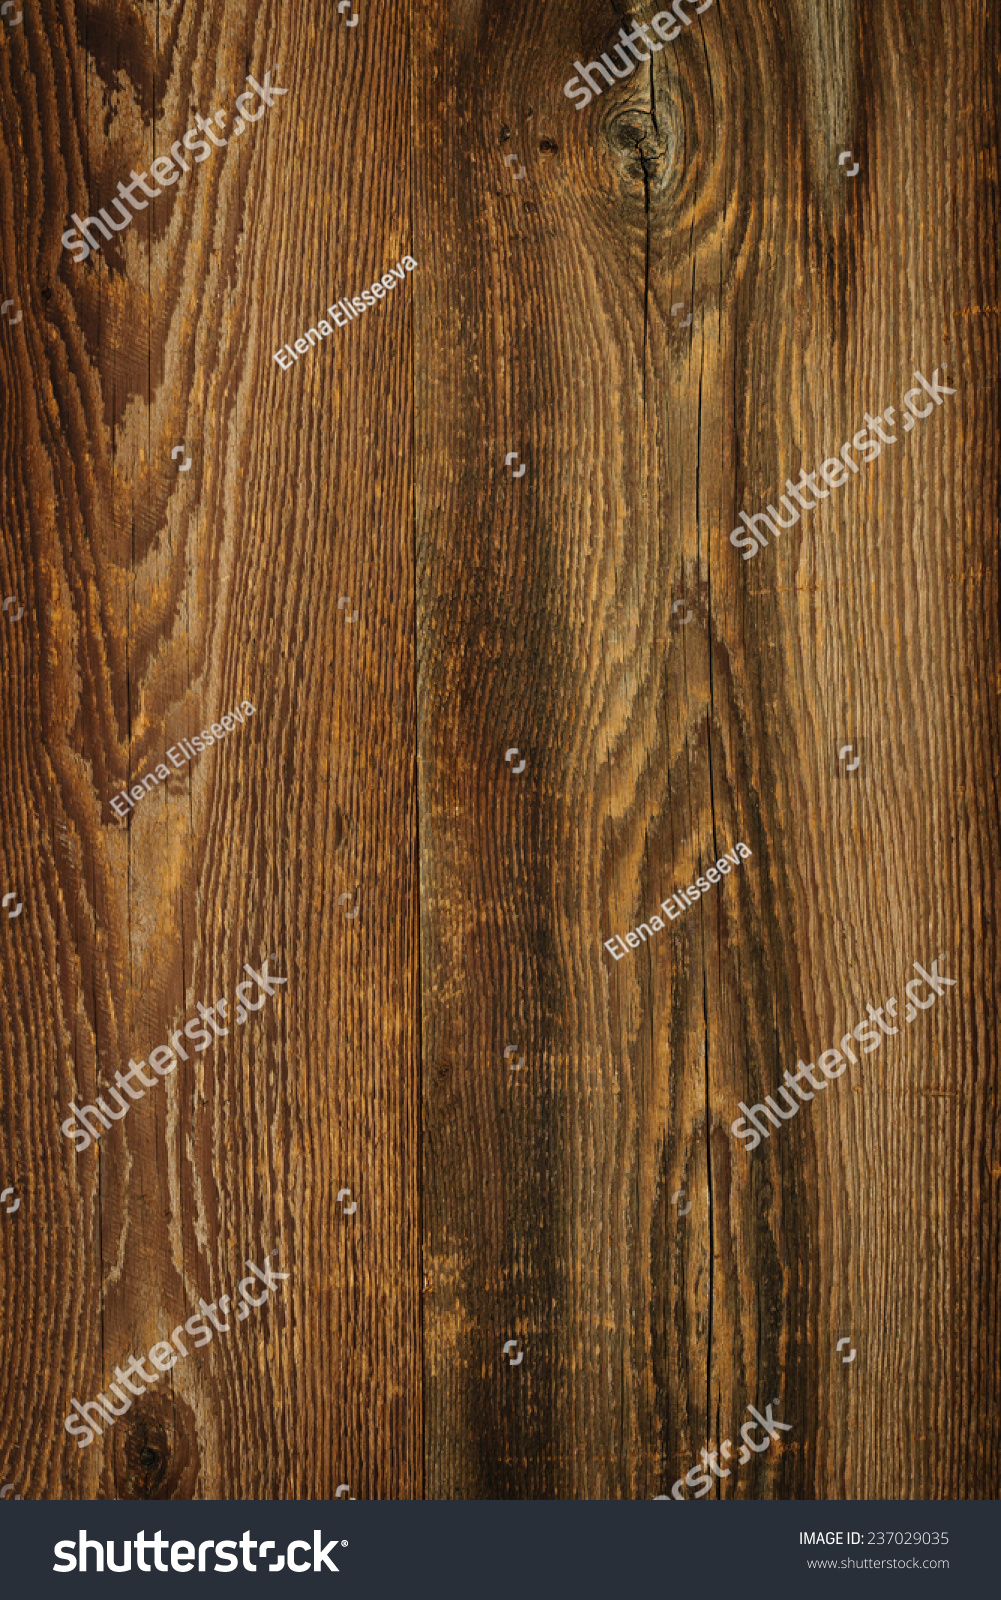 rustic brown wood background - photo #24